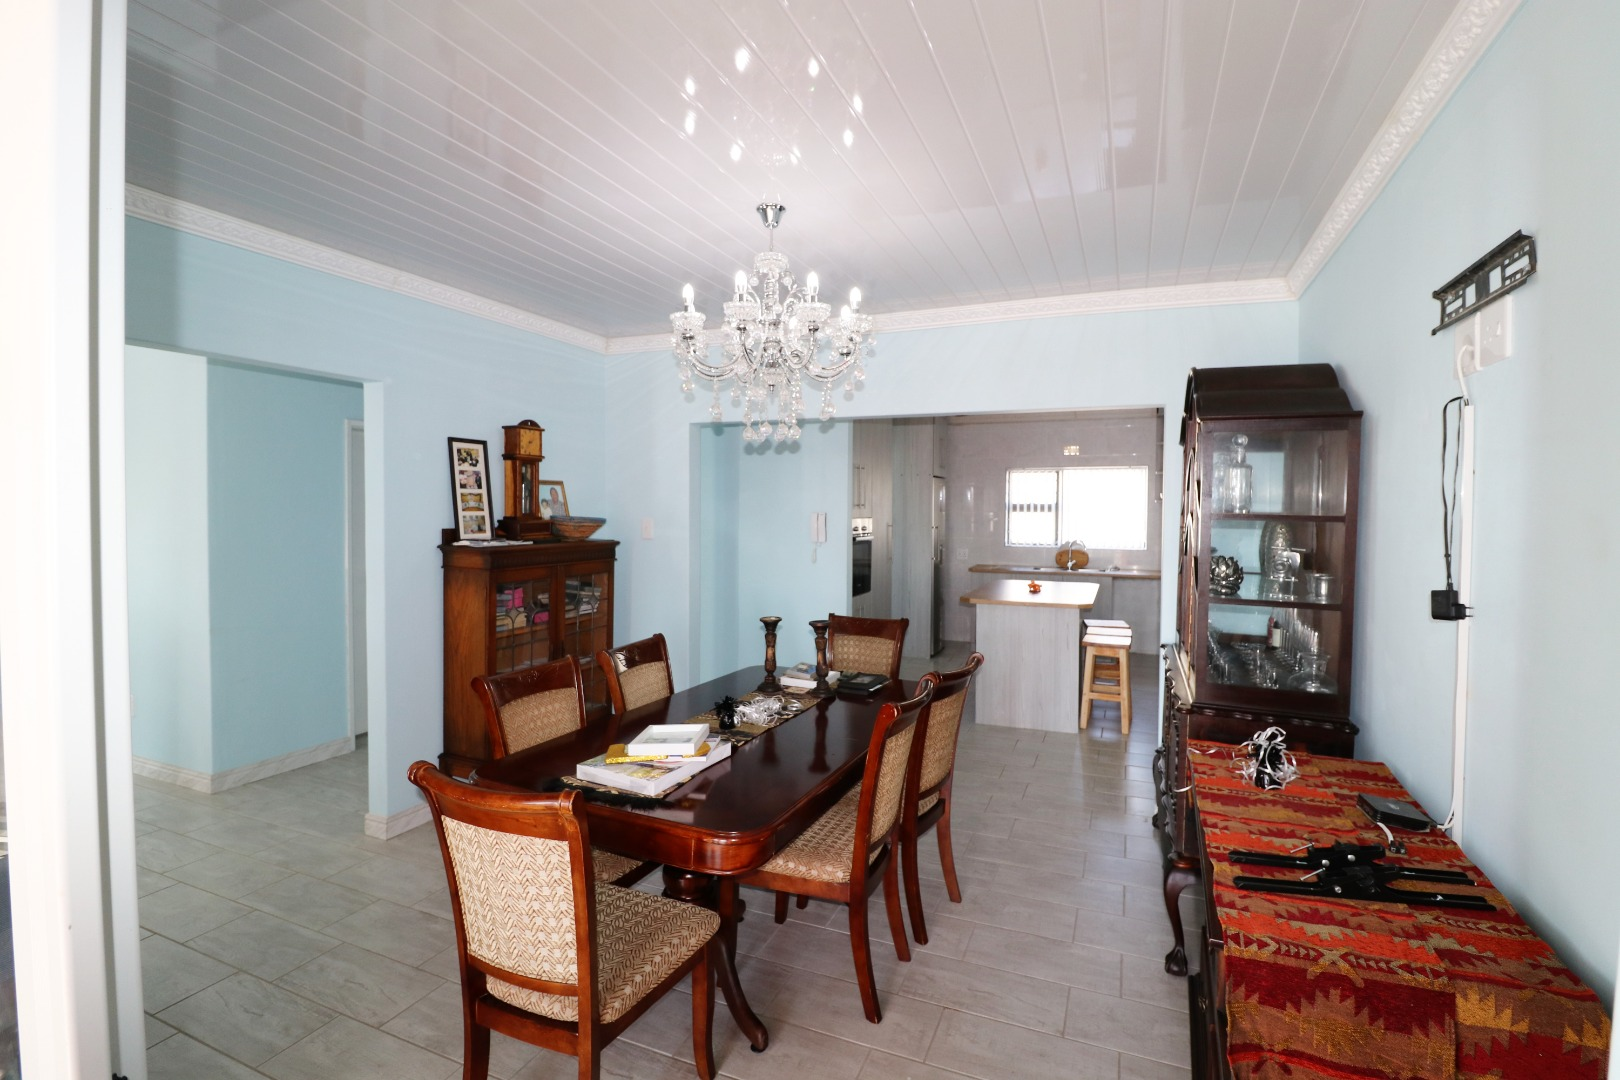 3 Bedroom House For Sale in Darling